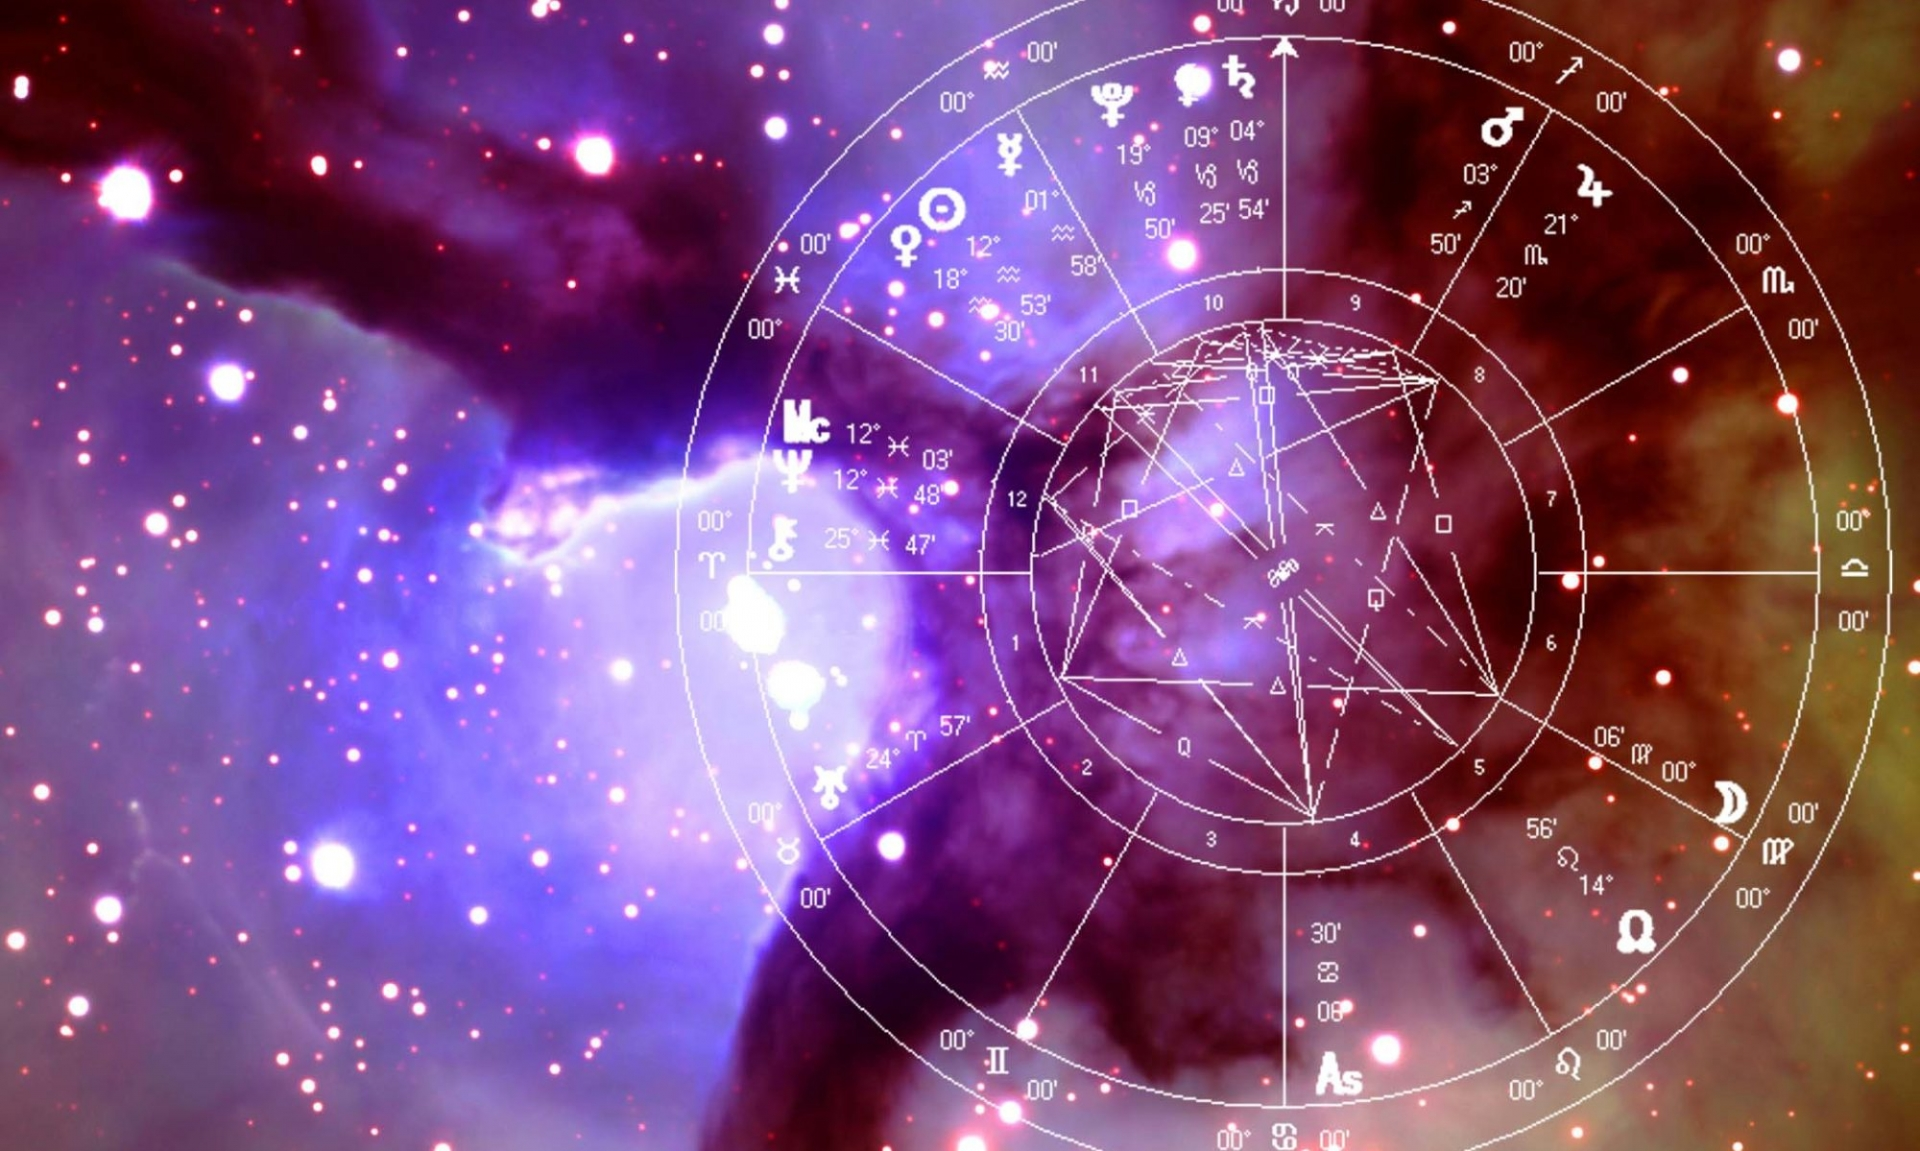 daily horoscope for march 26 astrological prediction zodiac signs